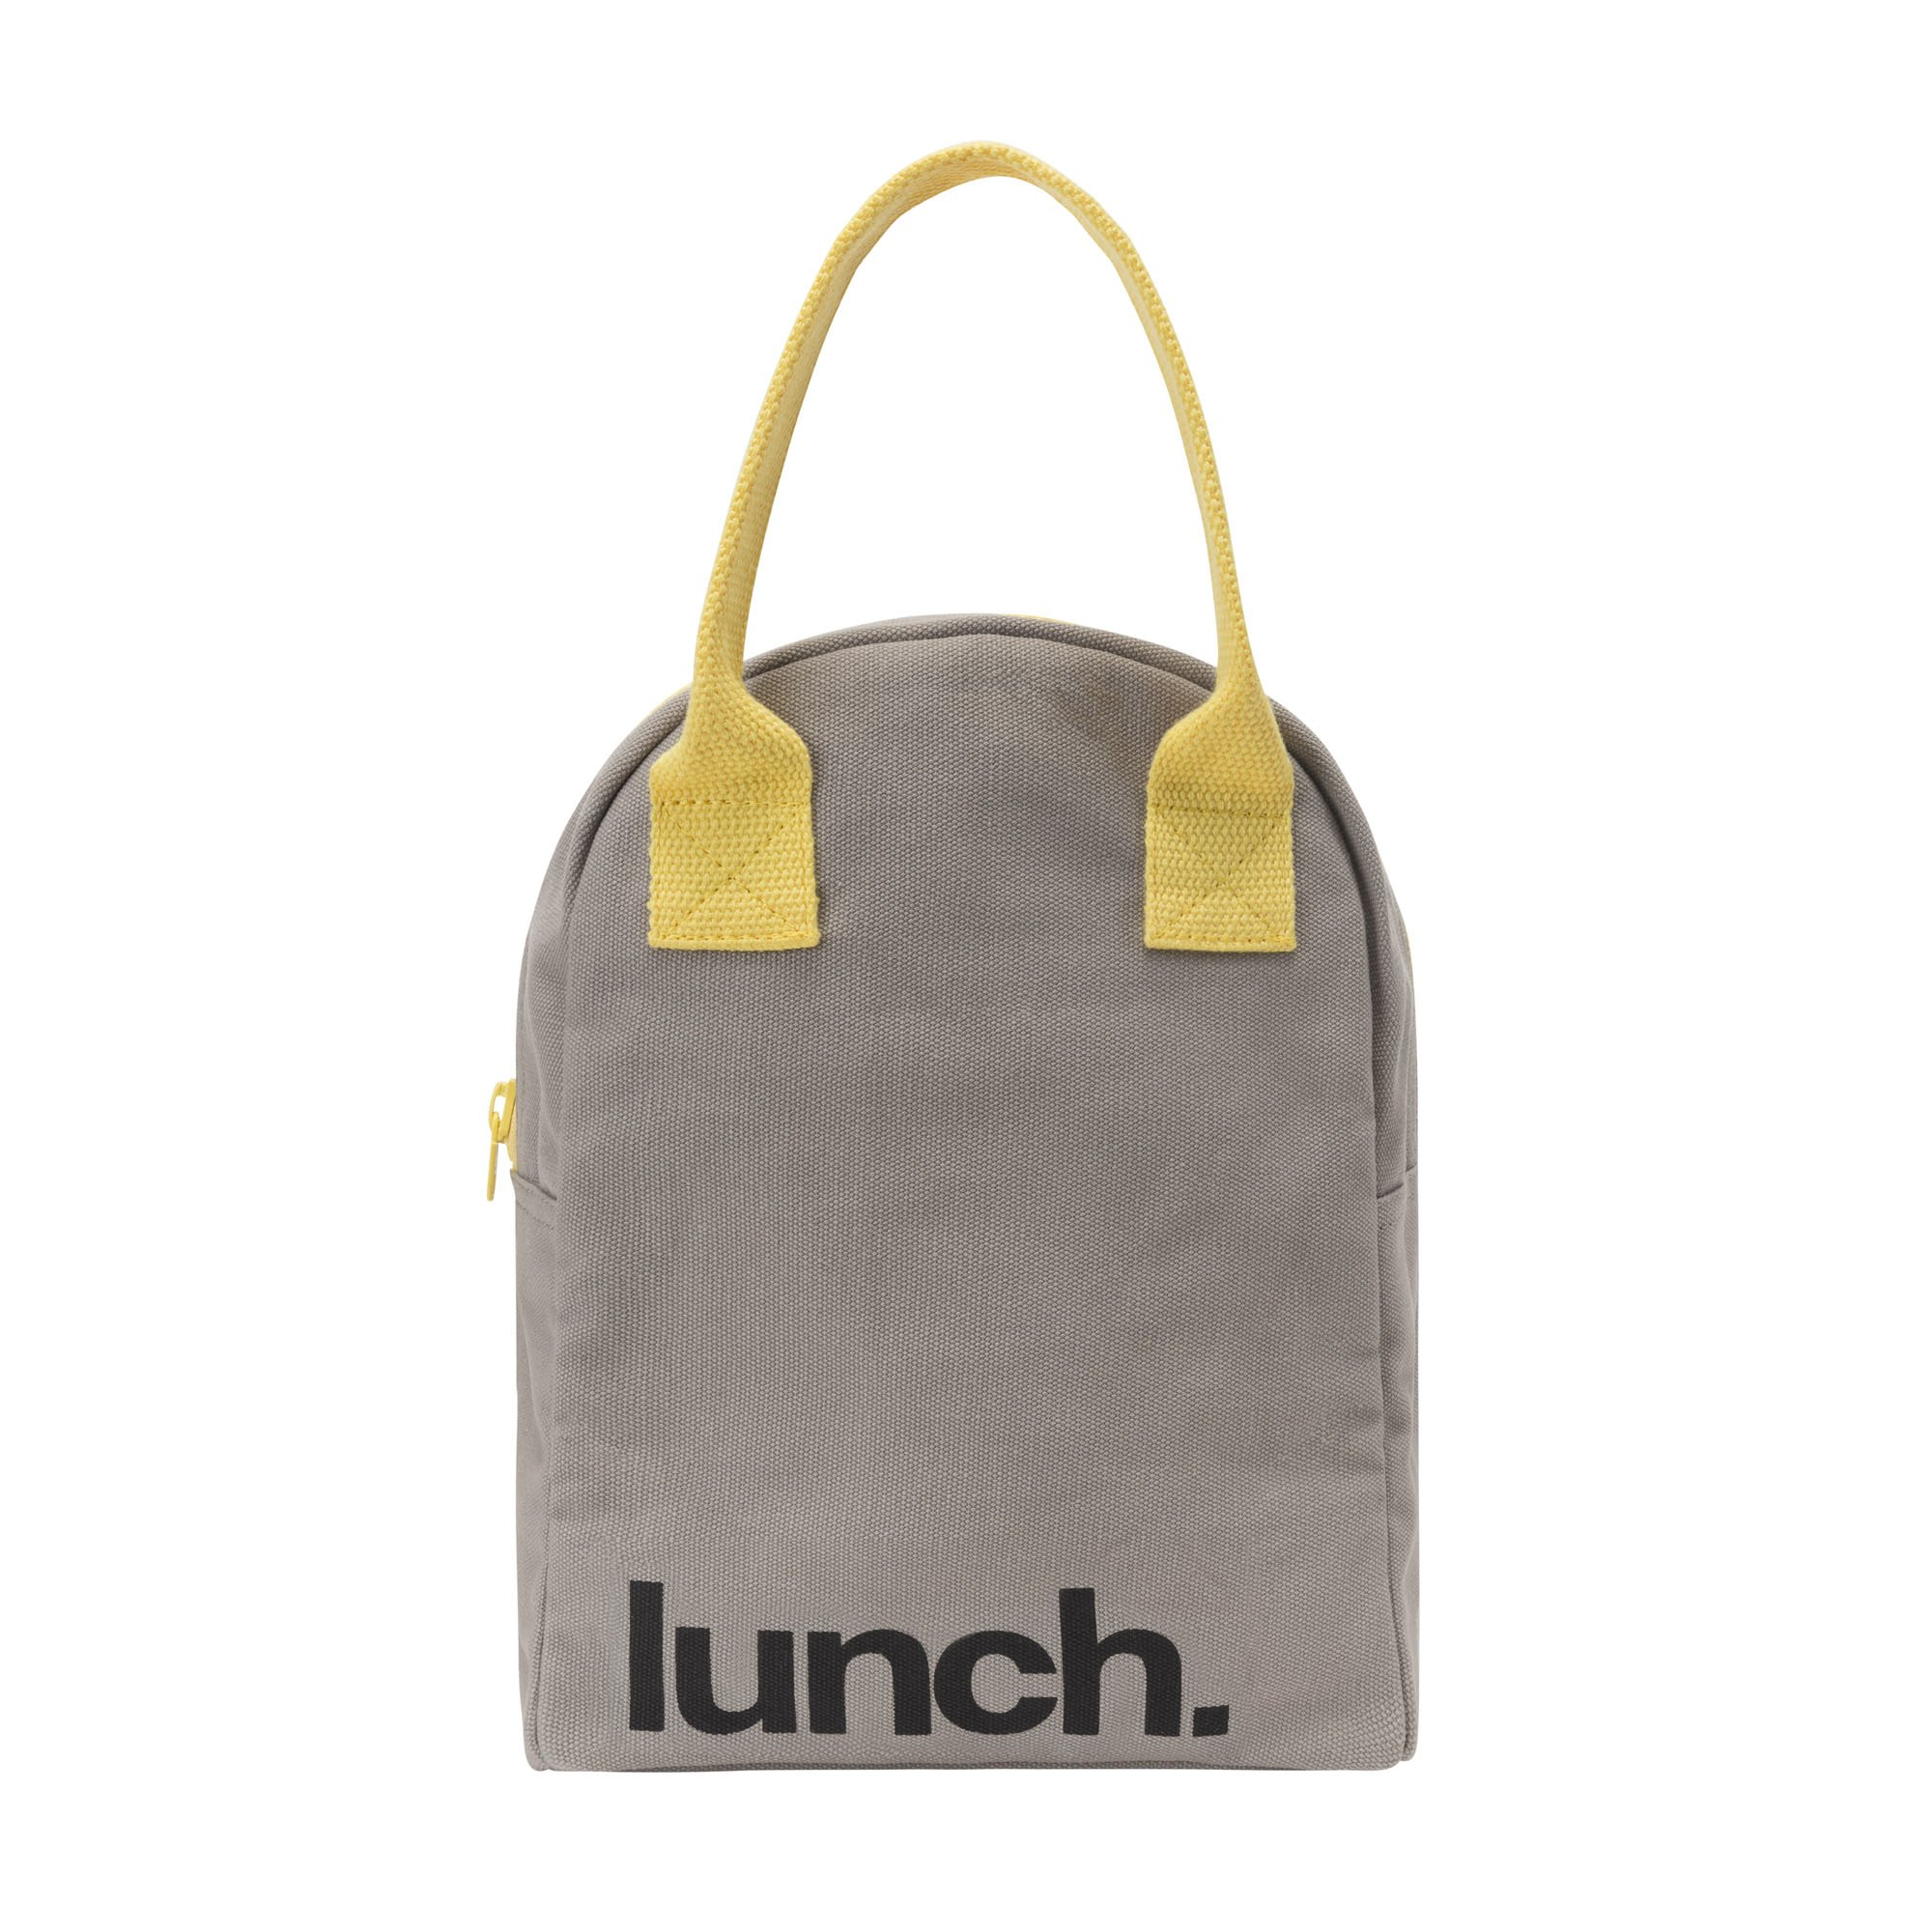 Fluf Reusable Canvas Lunch Bag | Lunch Box for Women, Men, Kids | Organic Cotton Meal Tote with Zipper | Grey 'Lunch'